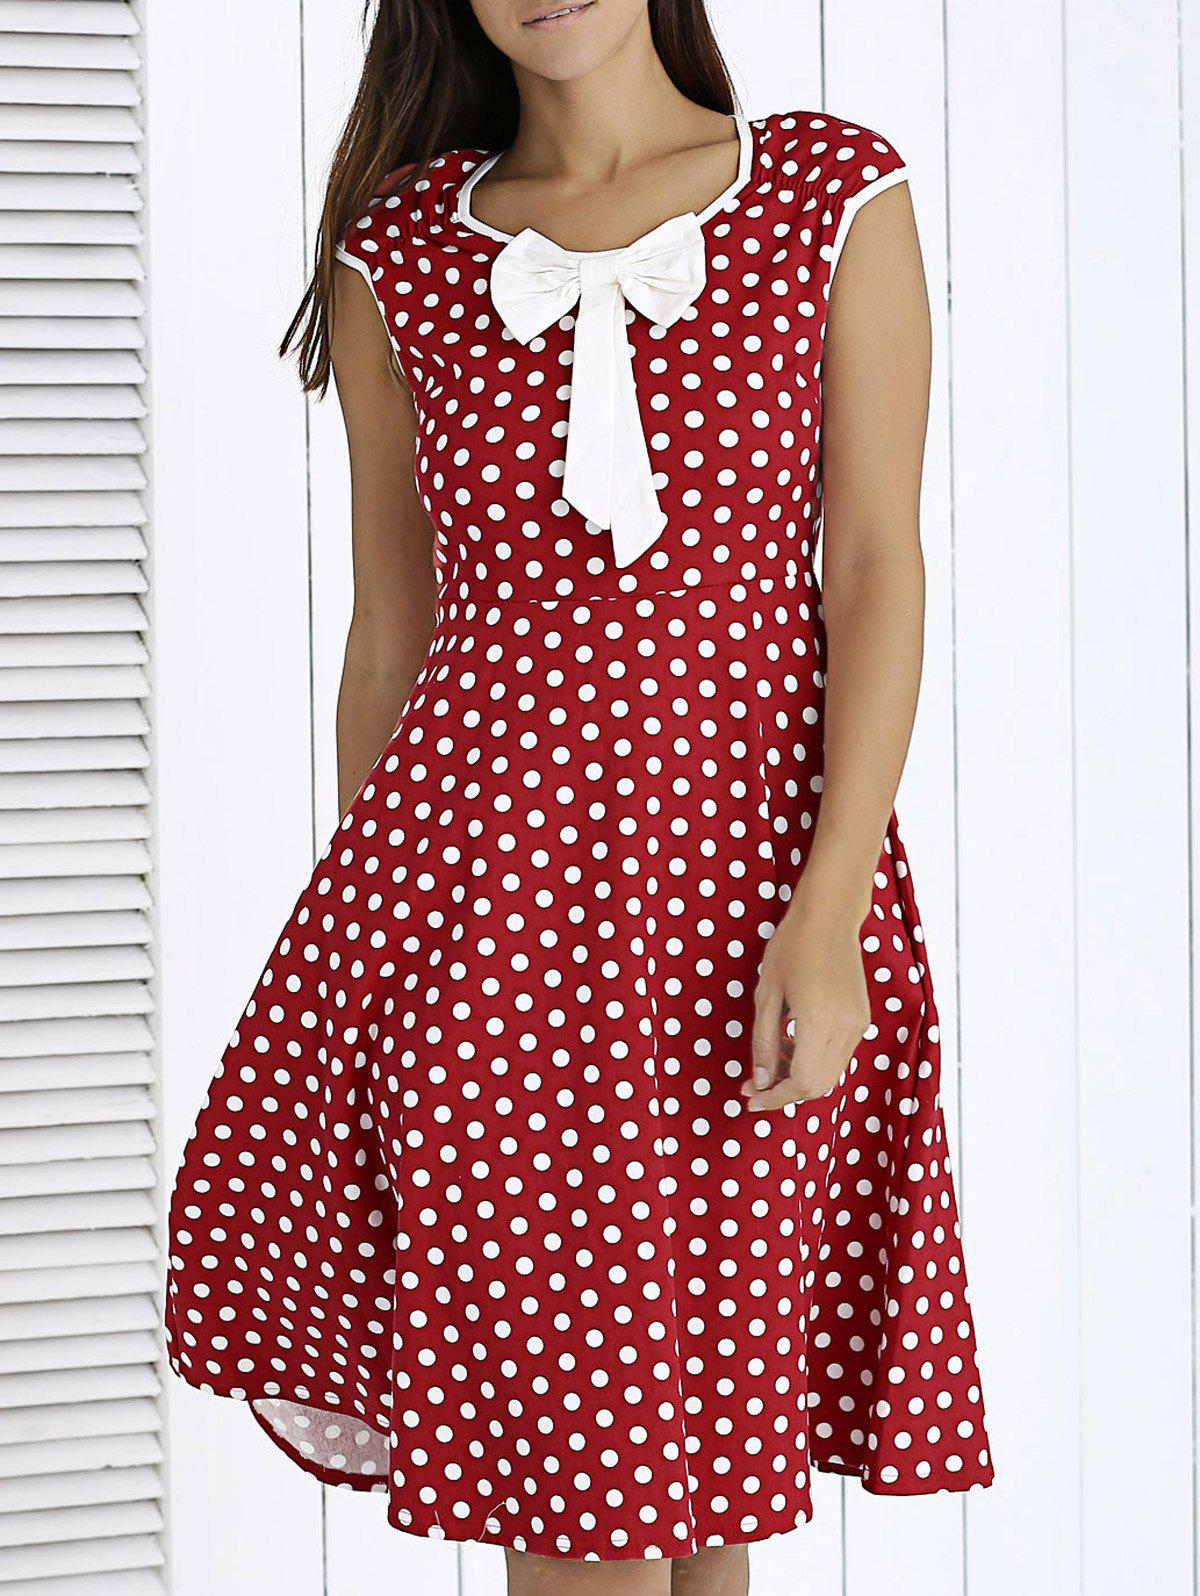 Vintage Bowknot Front Polka Dot Dress For Women